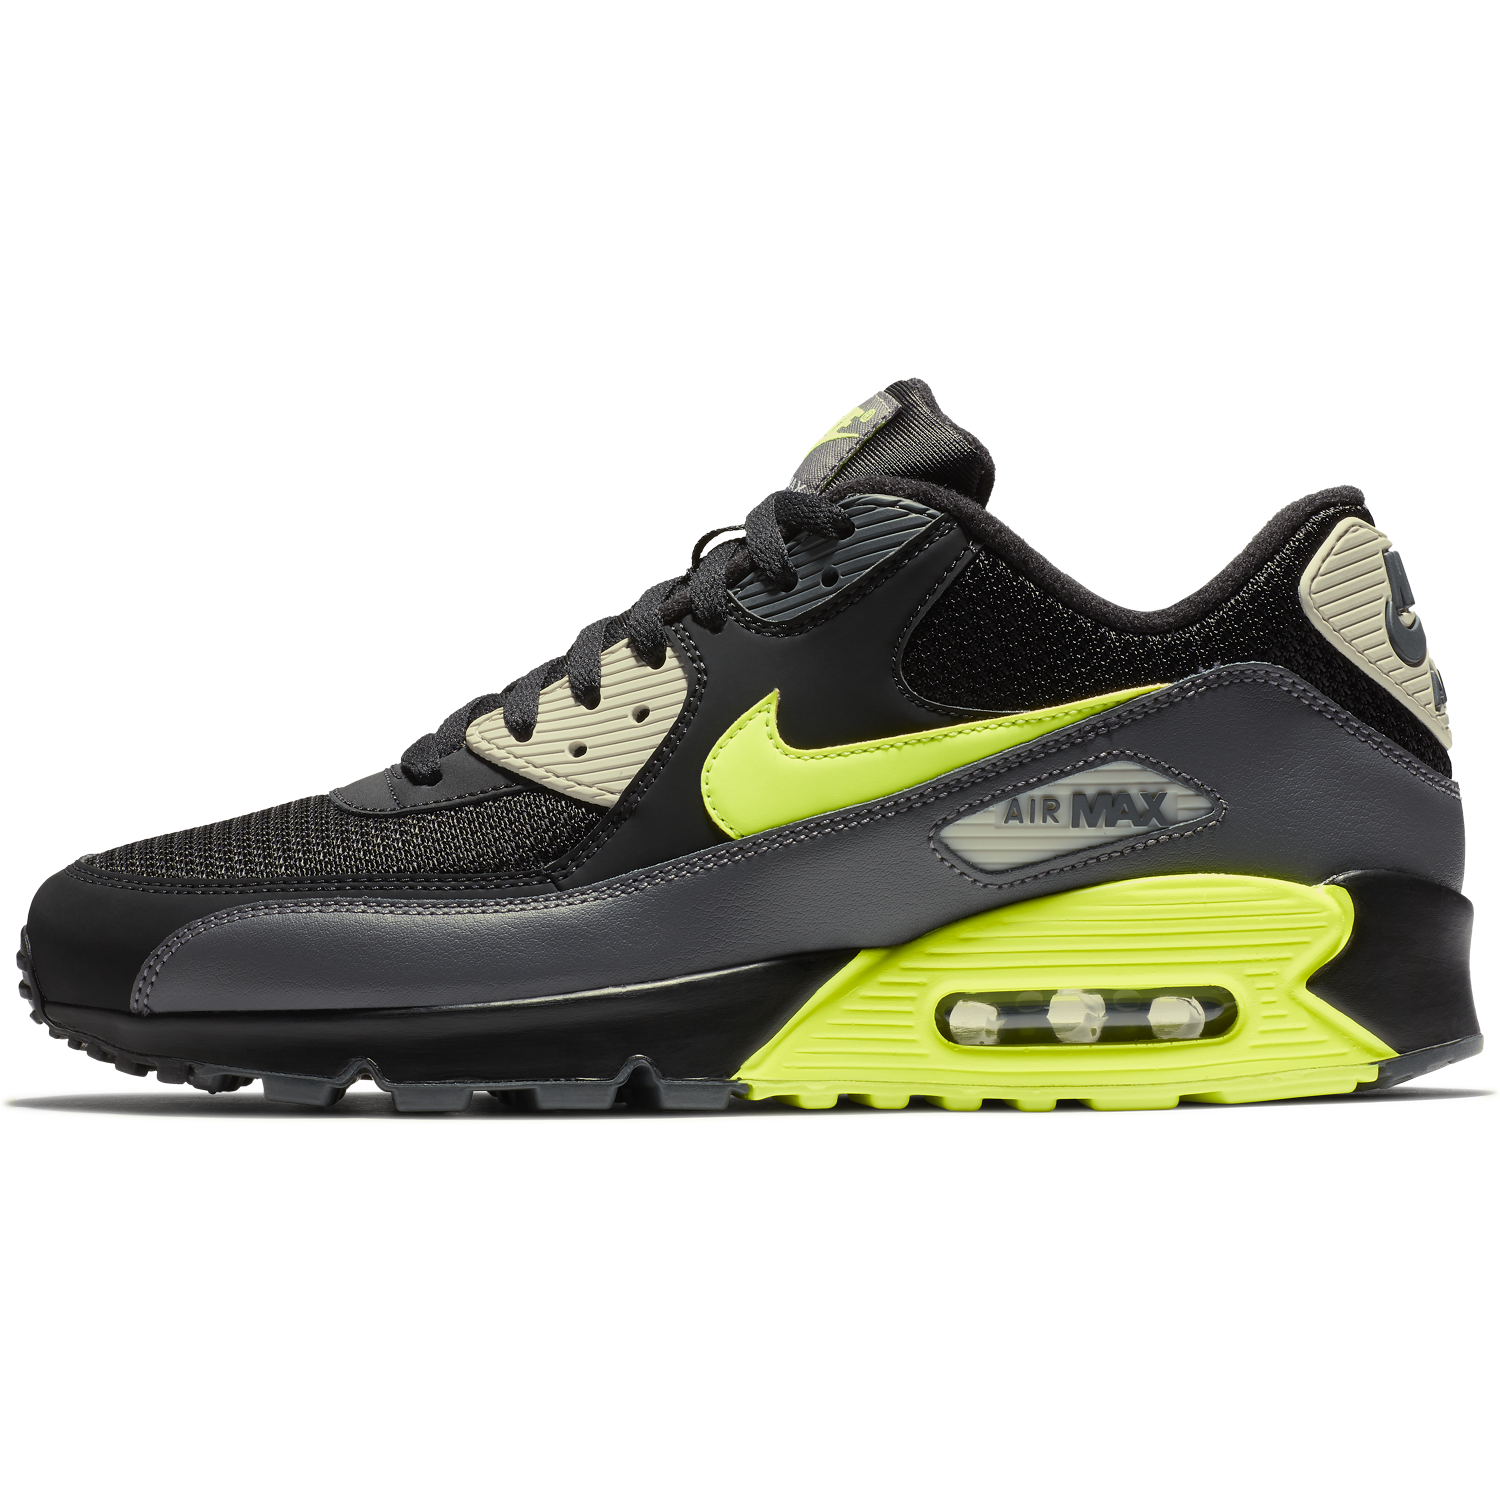 competitive price 10bca 840dd ... BUTY MĘSKIE LIFESTYLE NIKE AIR MAX 90 ESSENTIAL CZARNE AJ1285-015 ...